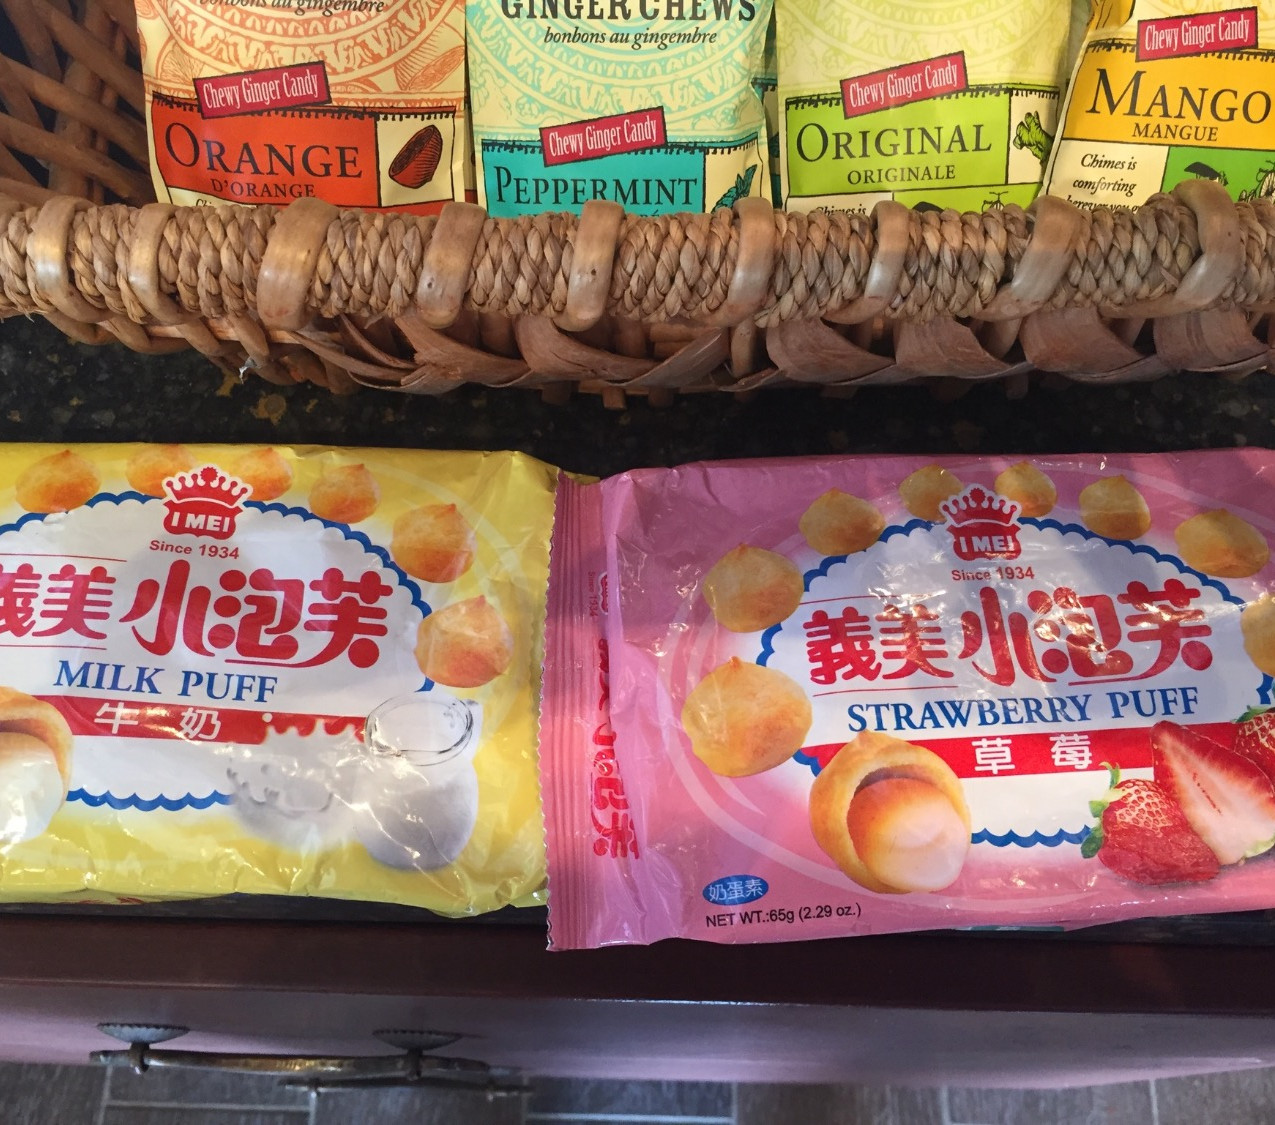 Fruit flavors and something called Milk Puff.